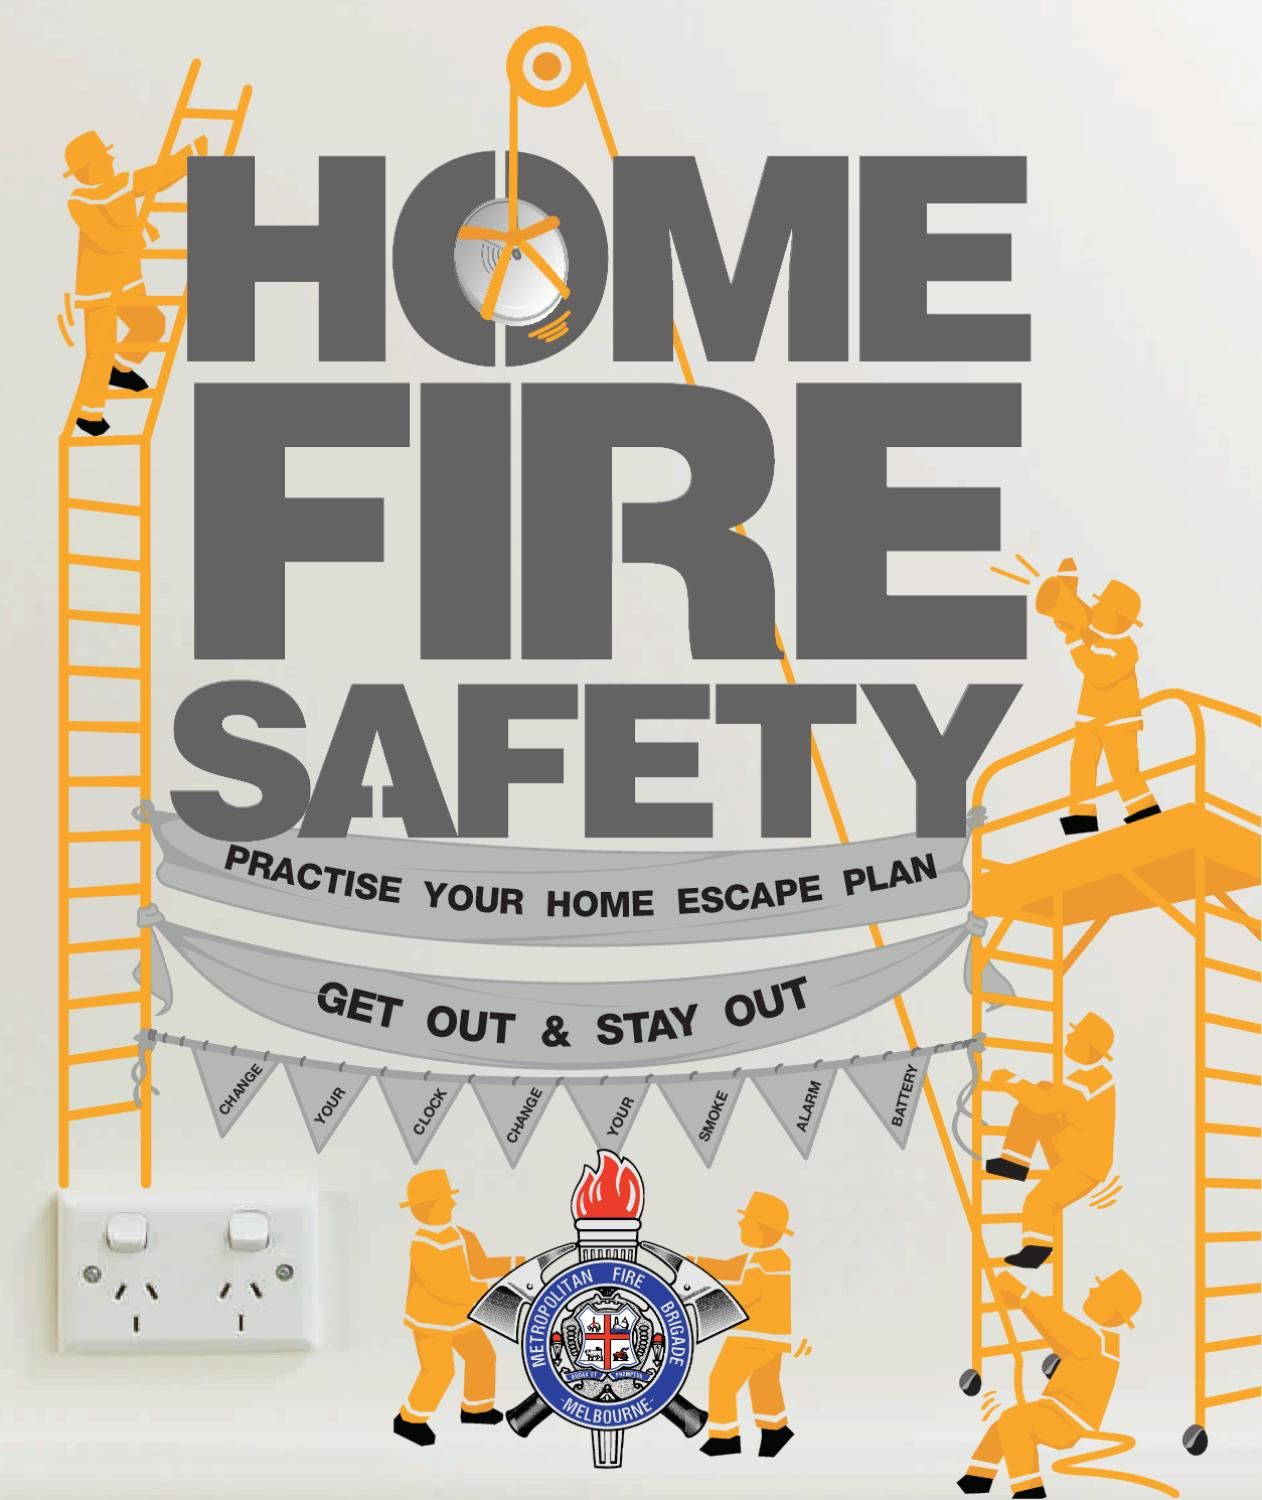 Home Fire Safety Brochure Fire safety, Fire, Escape plan